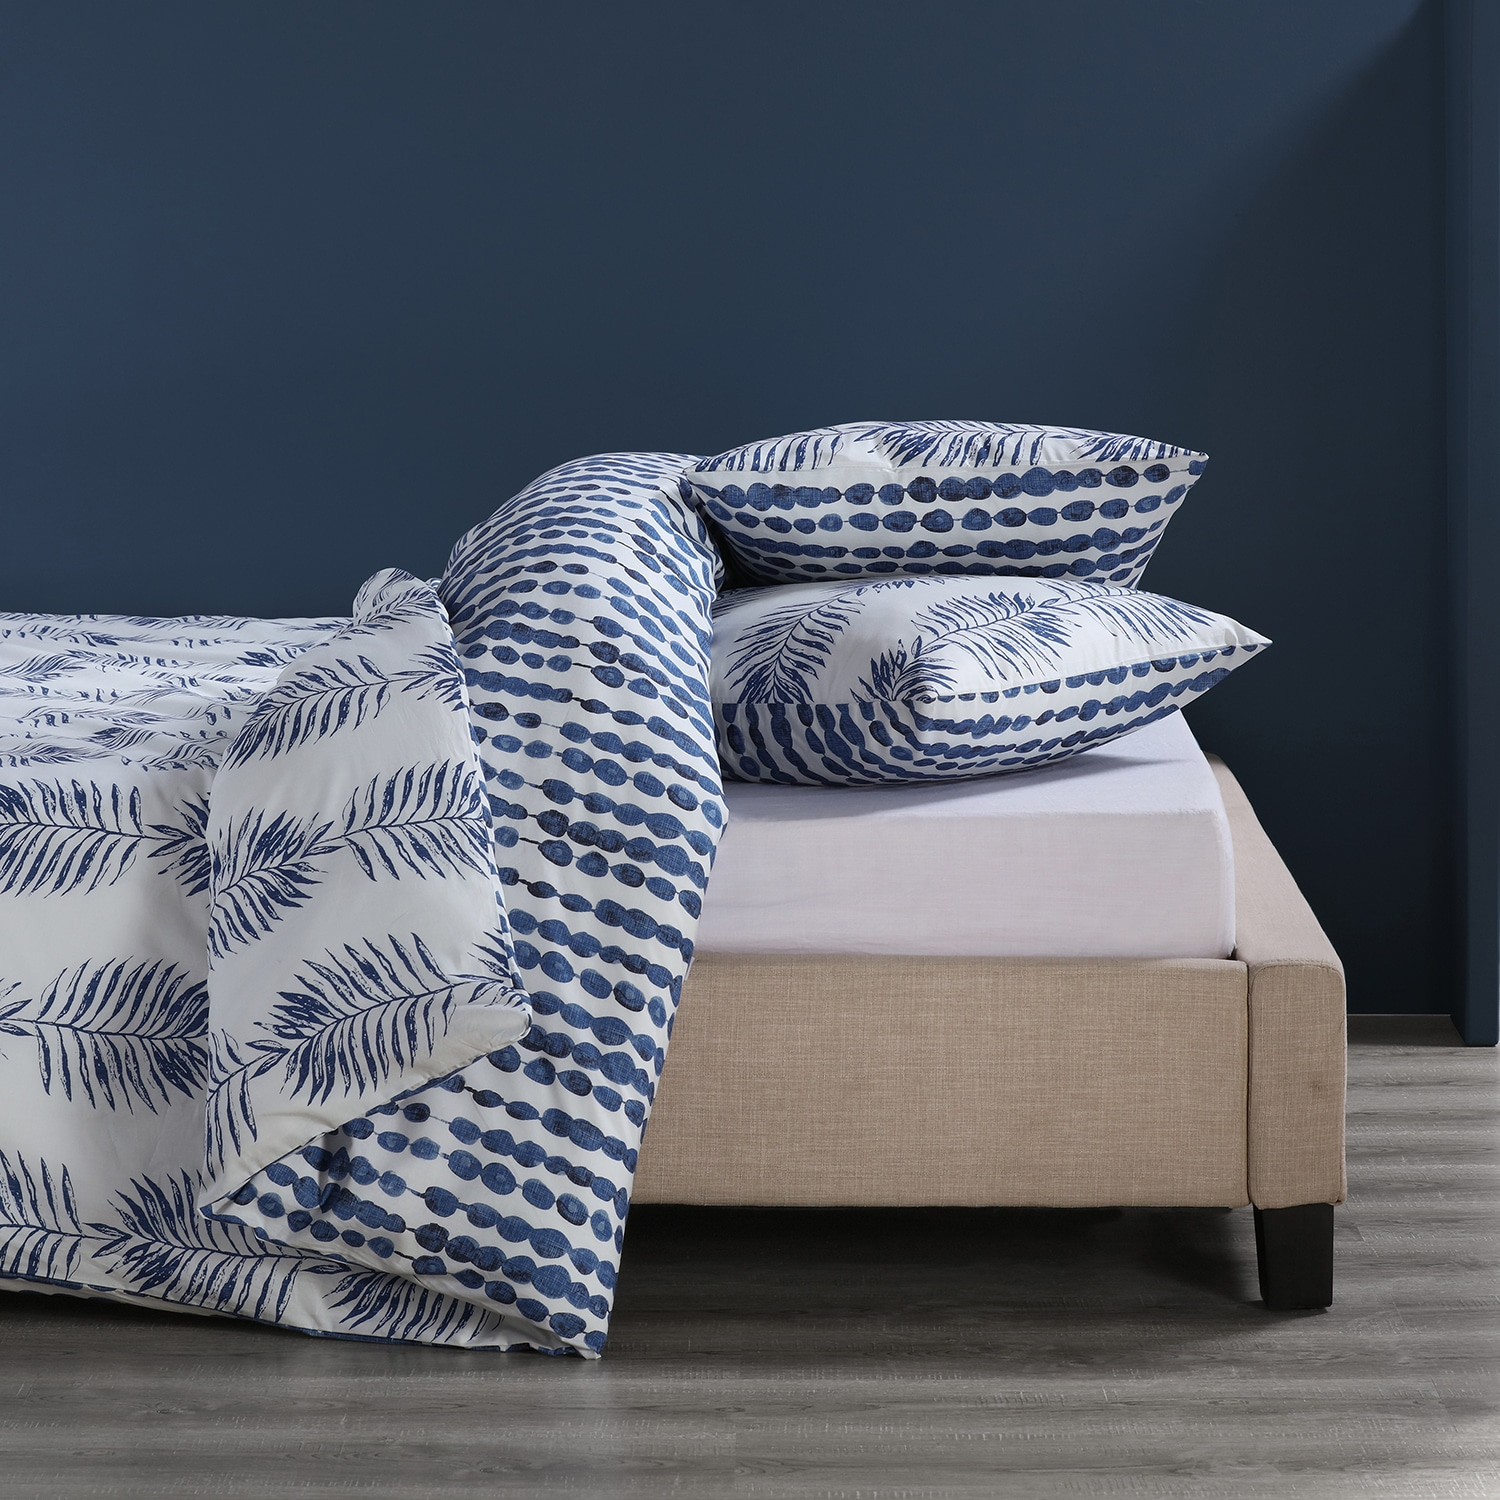 Tahiti Blue Cotton Percale Printed Reversible Duvet Cover Set